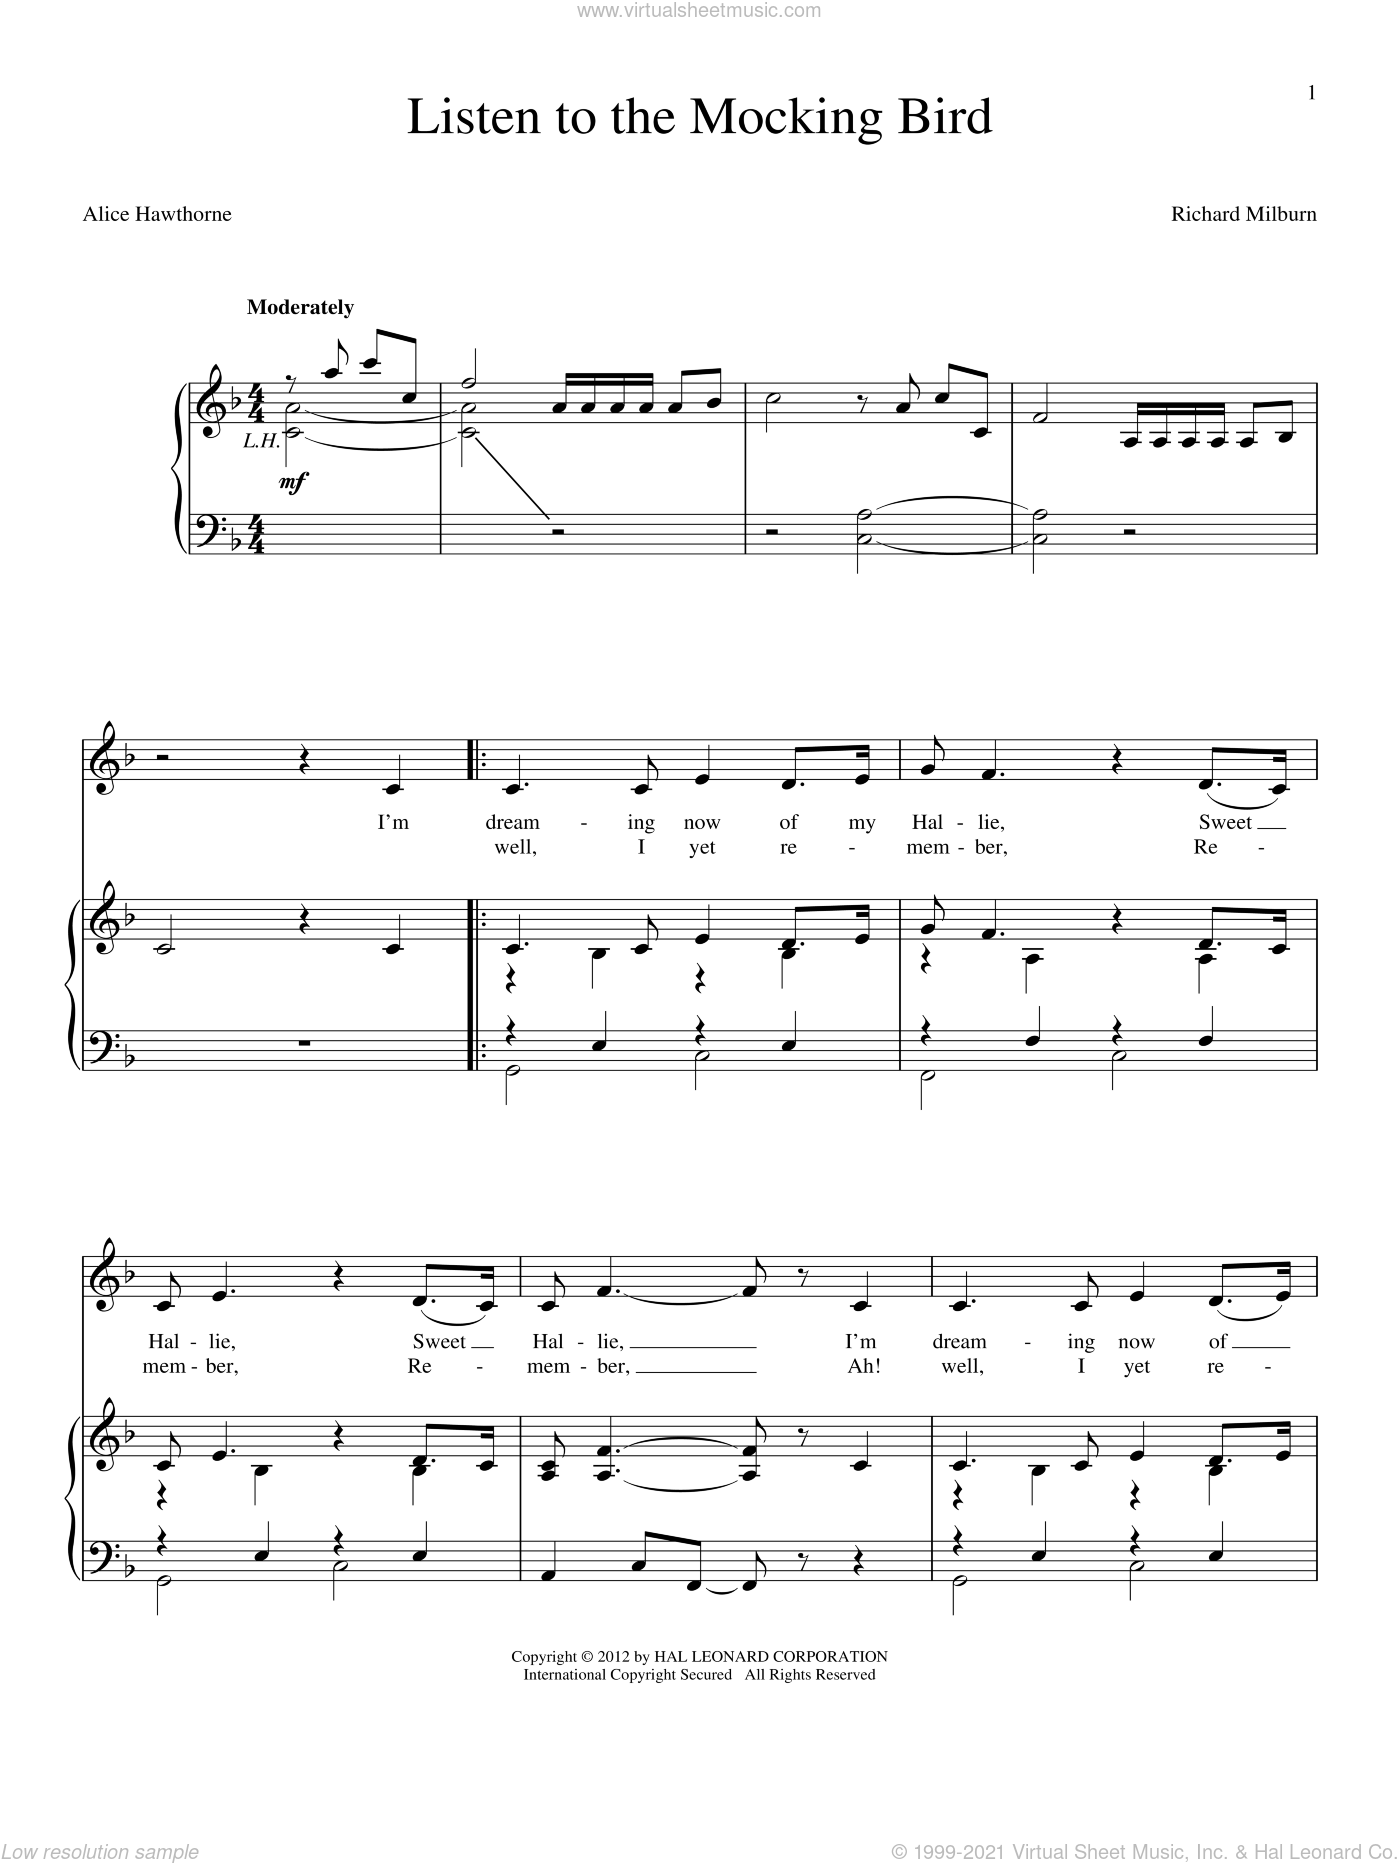 Listen To The Mocking Bird sheet music for voice and piano by Richard Milburn and Alice Hawthorne